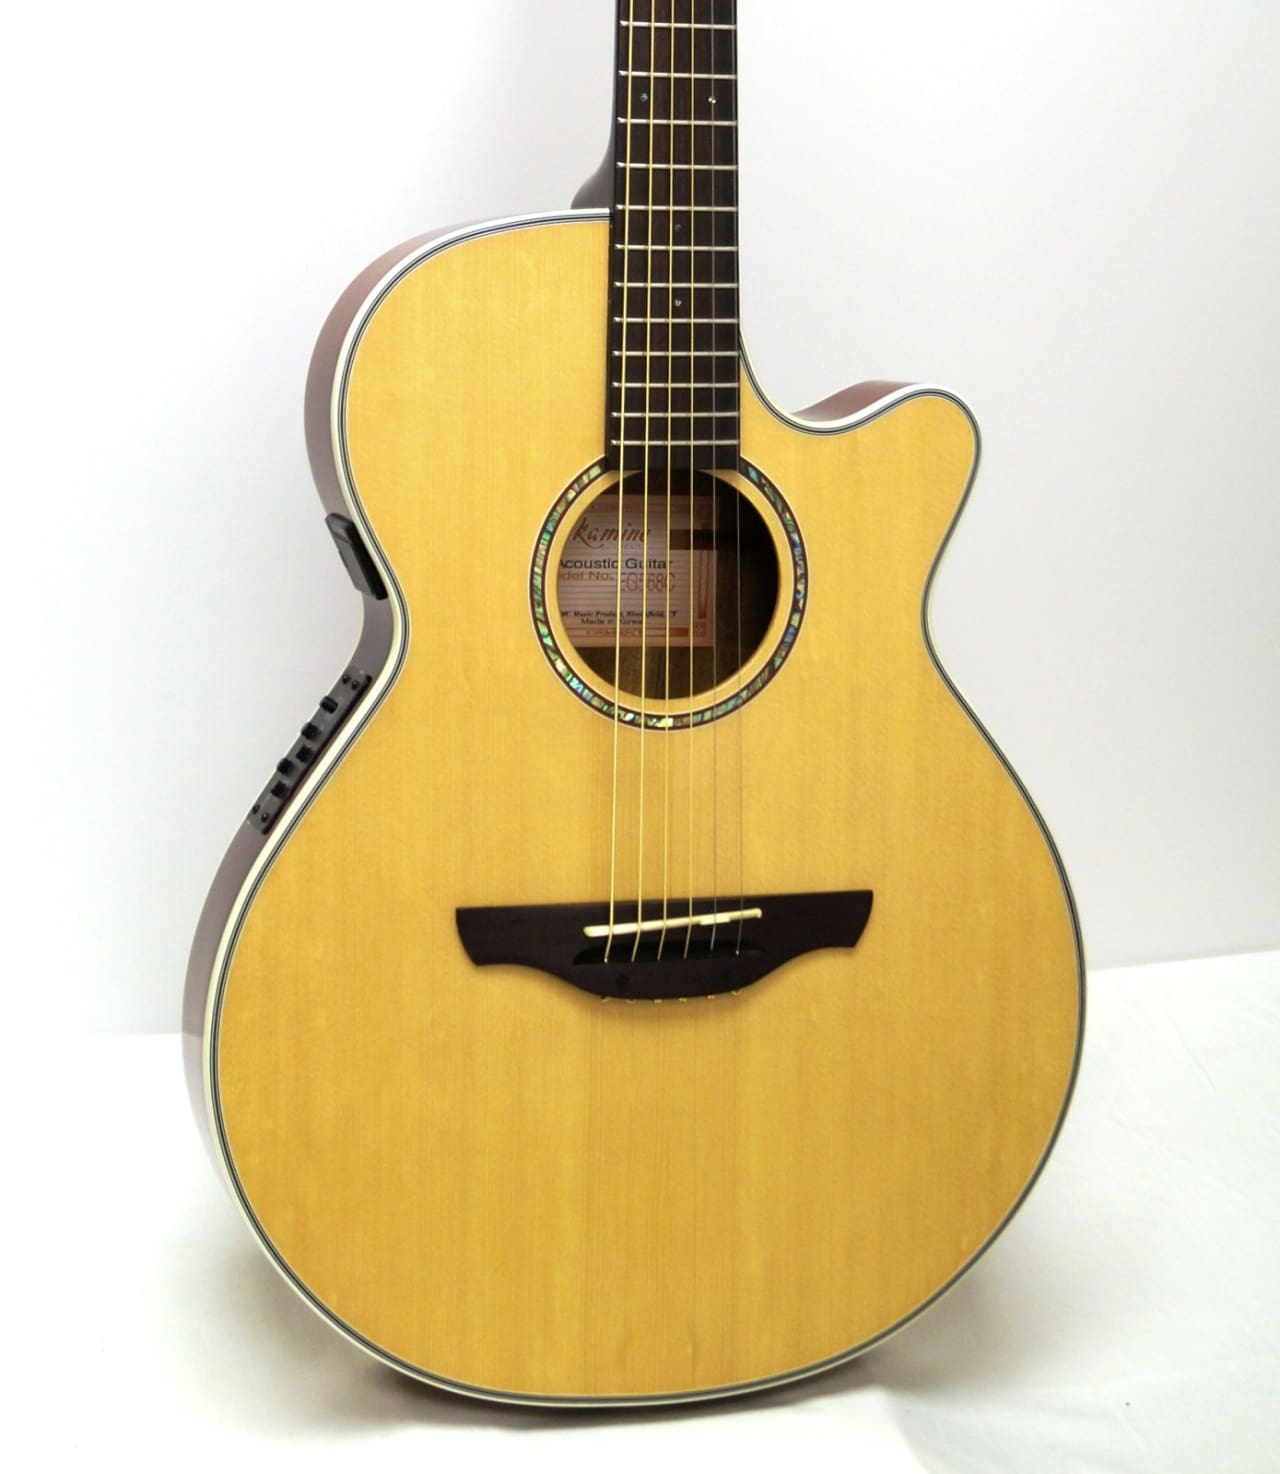 takamine eg568c fxc thinline cutaway acoustic electric guitar reverb. Black Bedroom Furniture Sets. Home Design Ideas